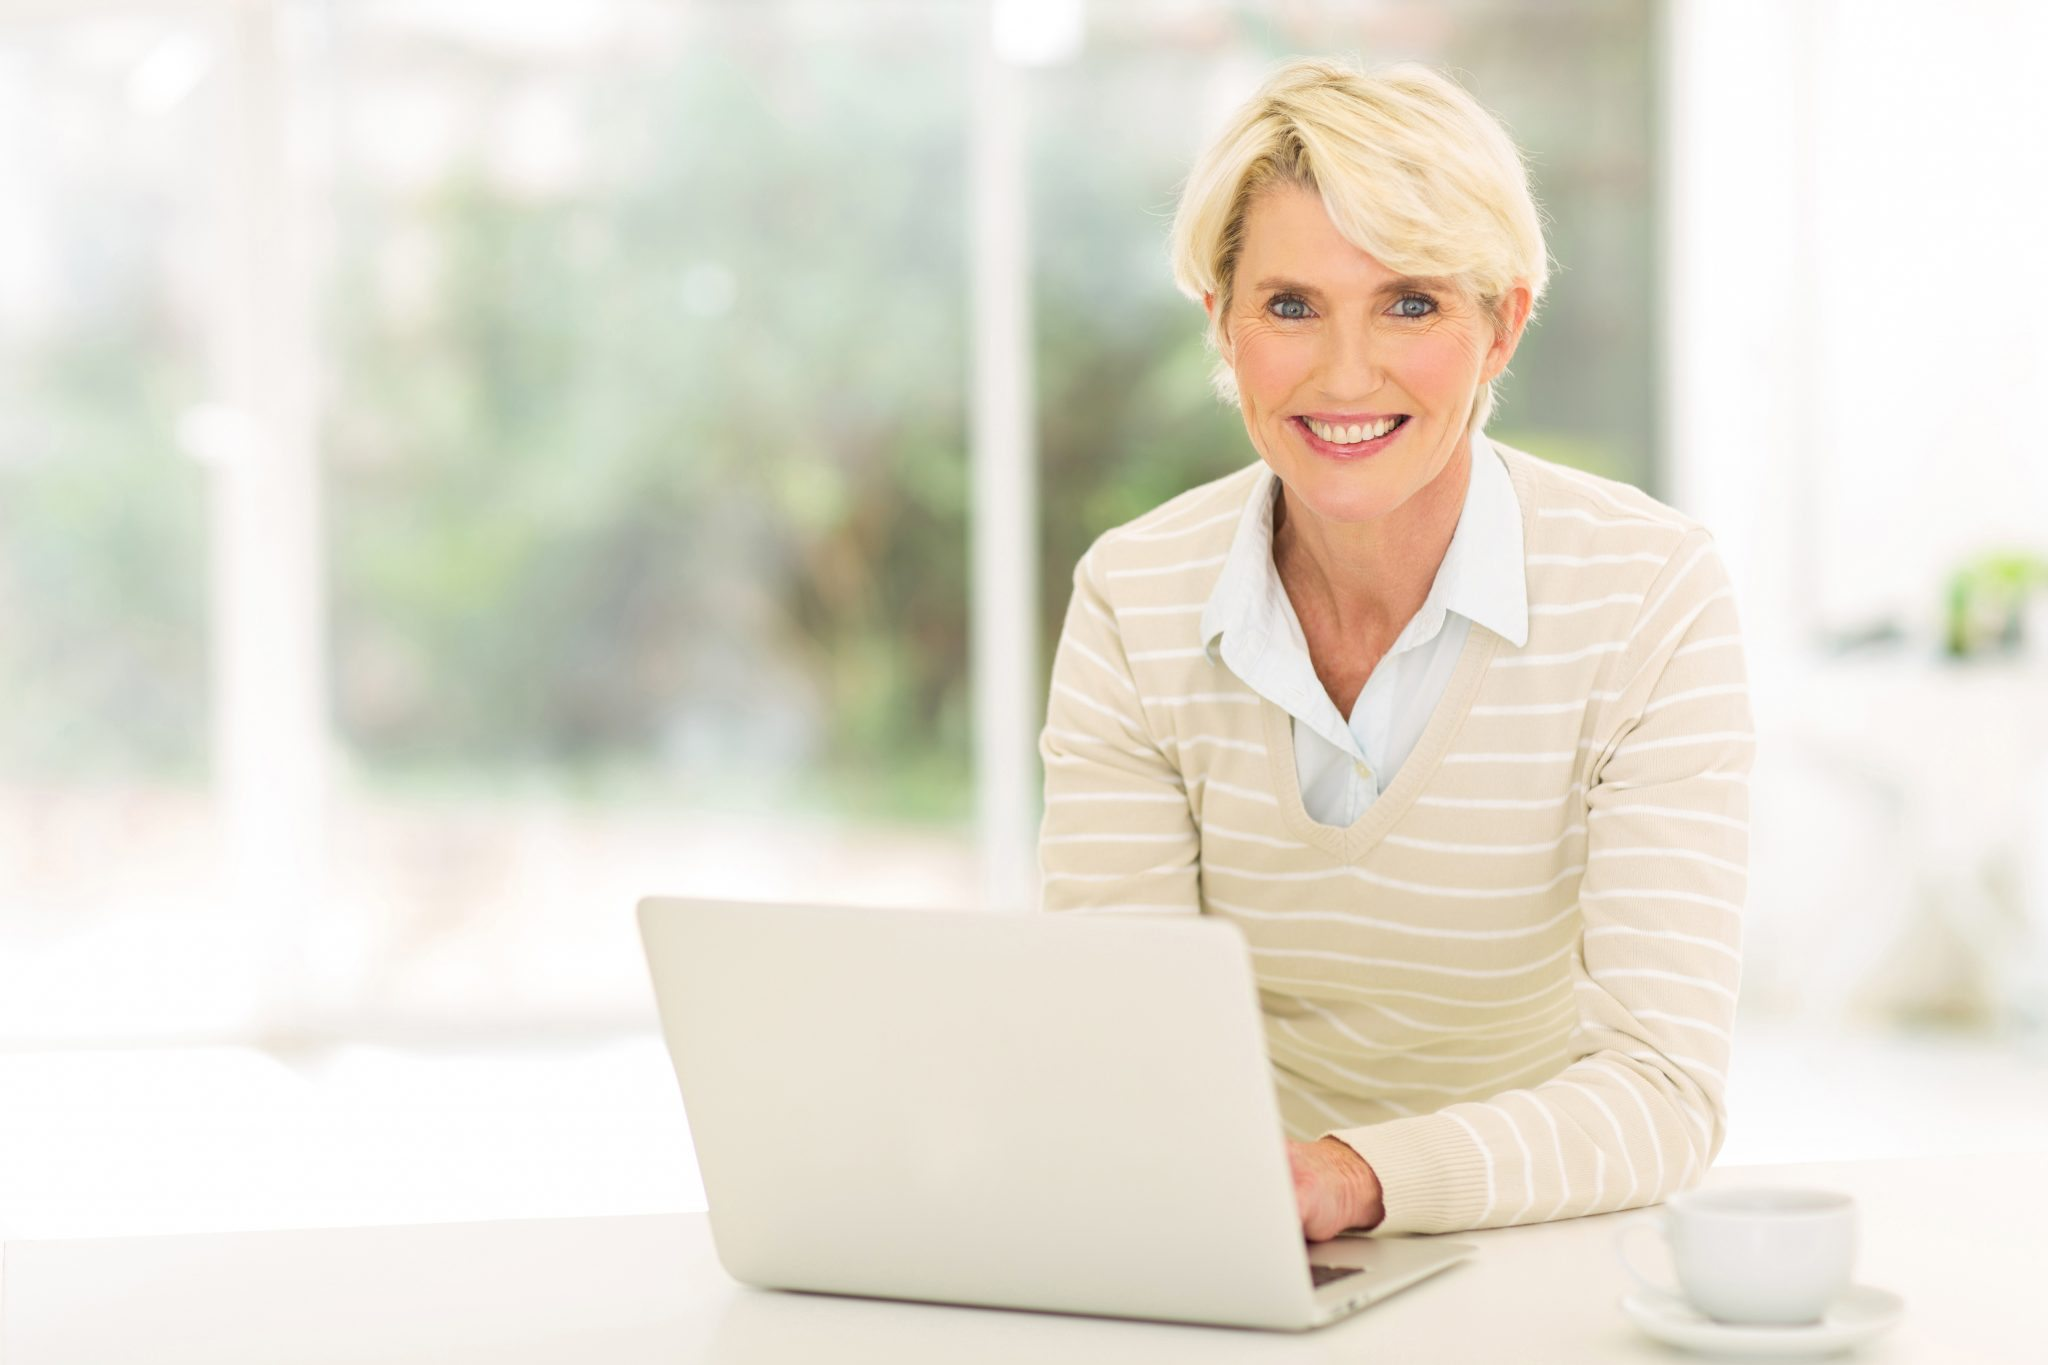 Mature Women On Computers 2